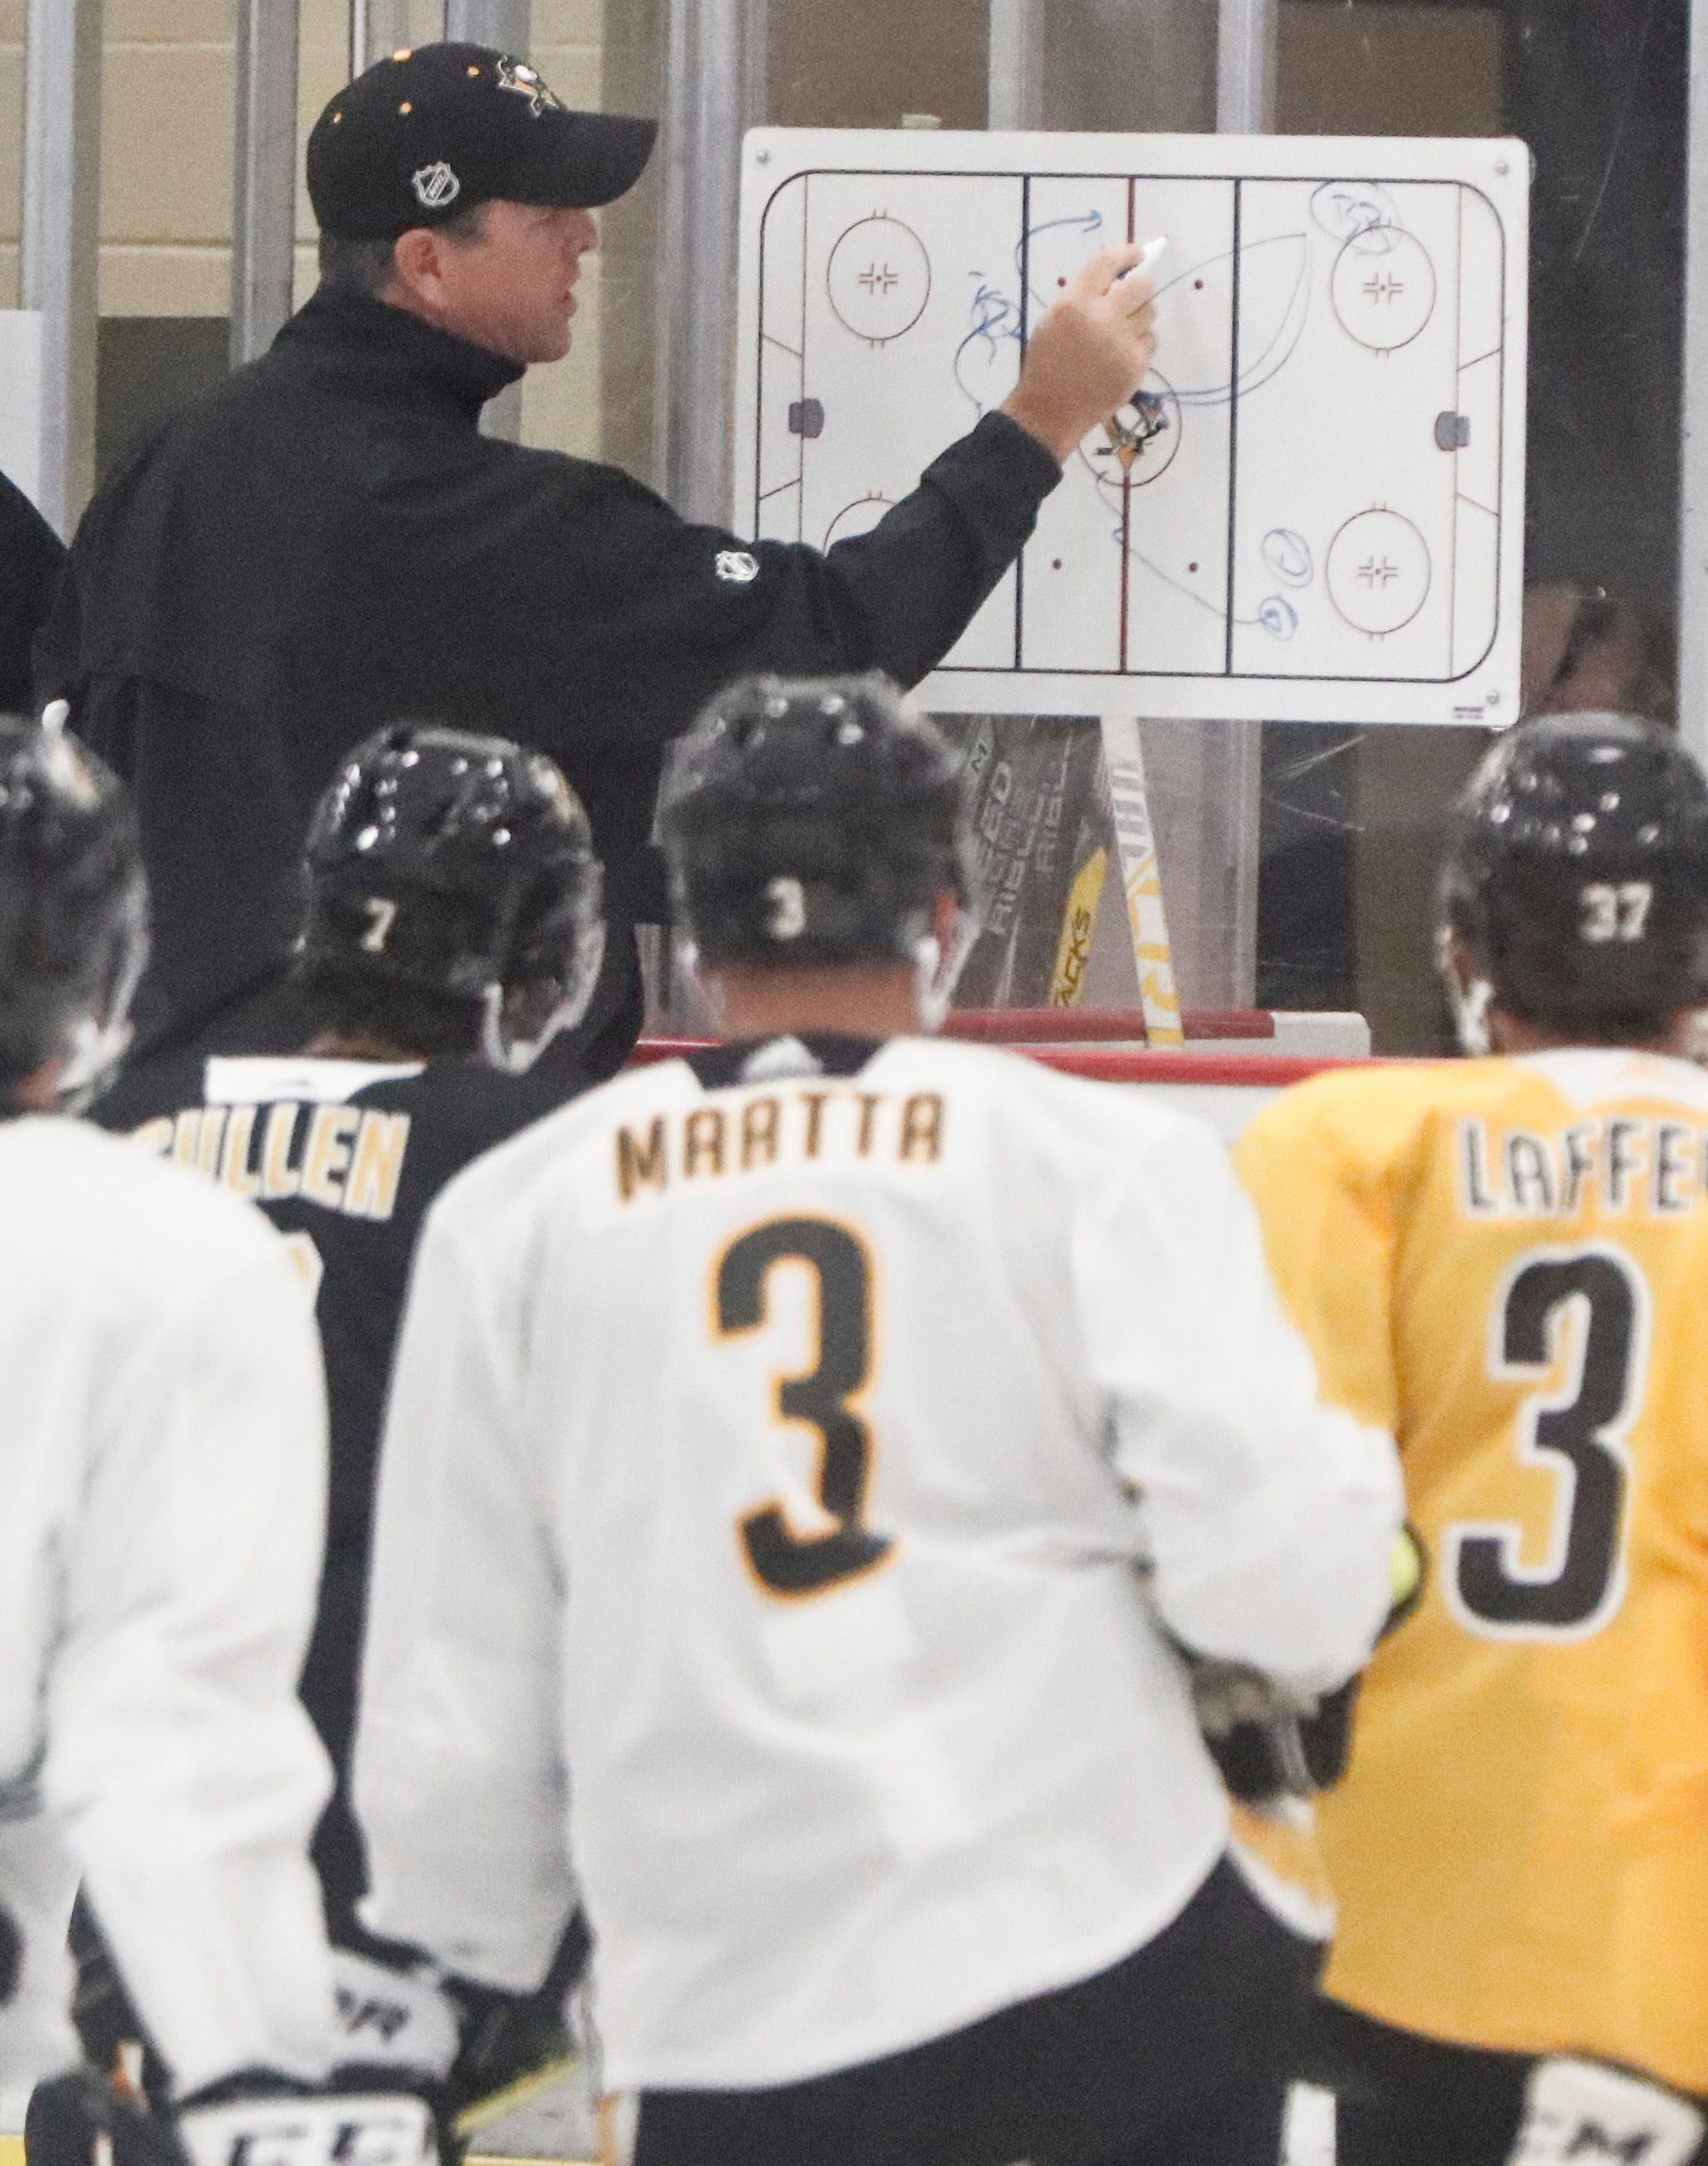 Penguins coach Mike Sullivan takes leave of absence after father's death